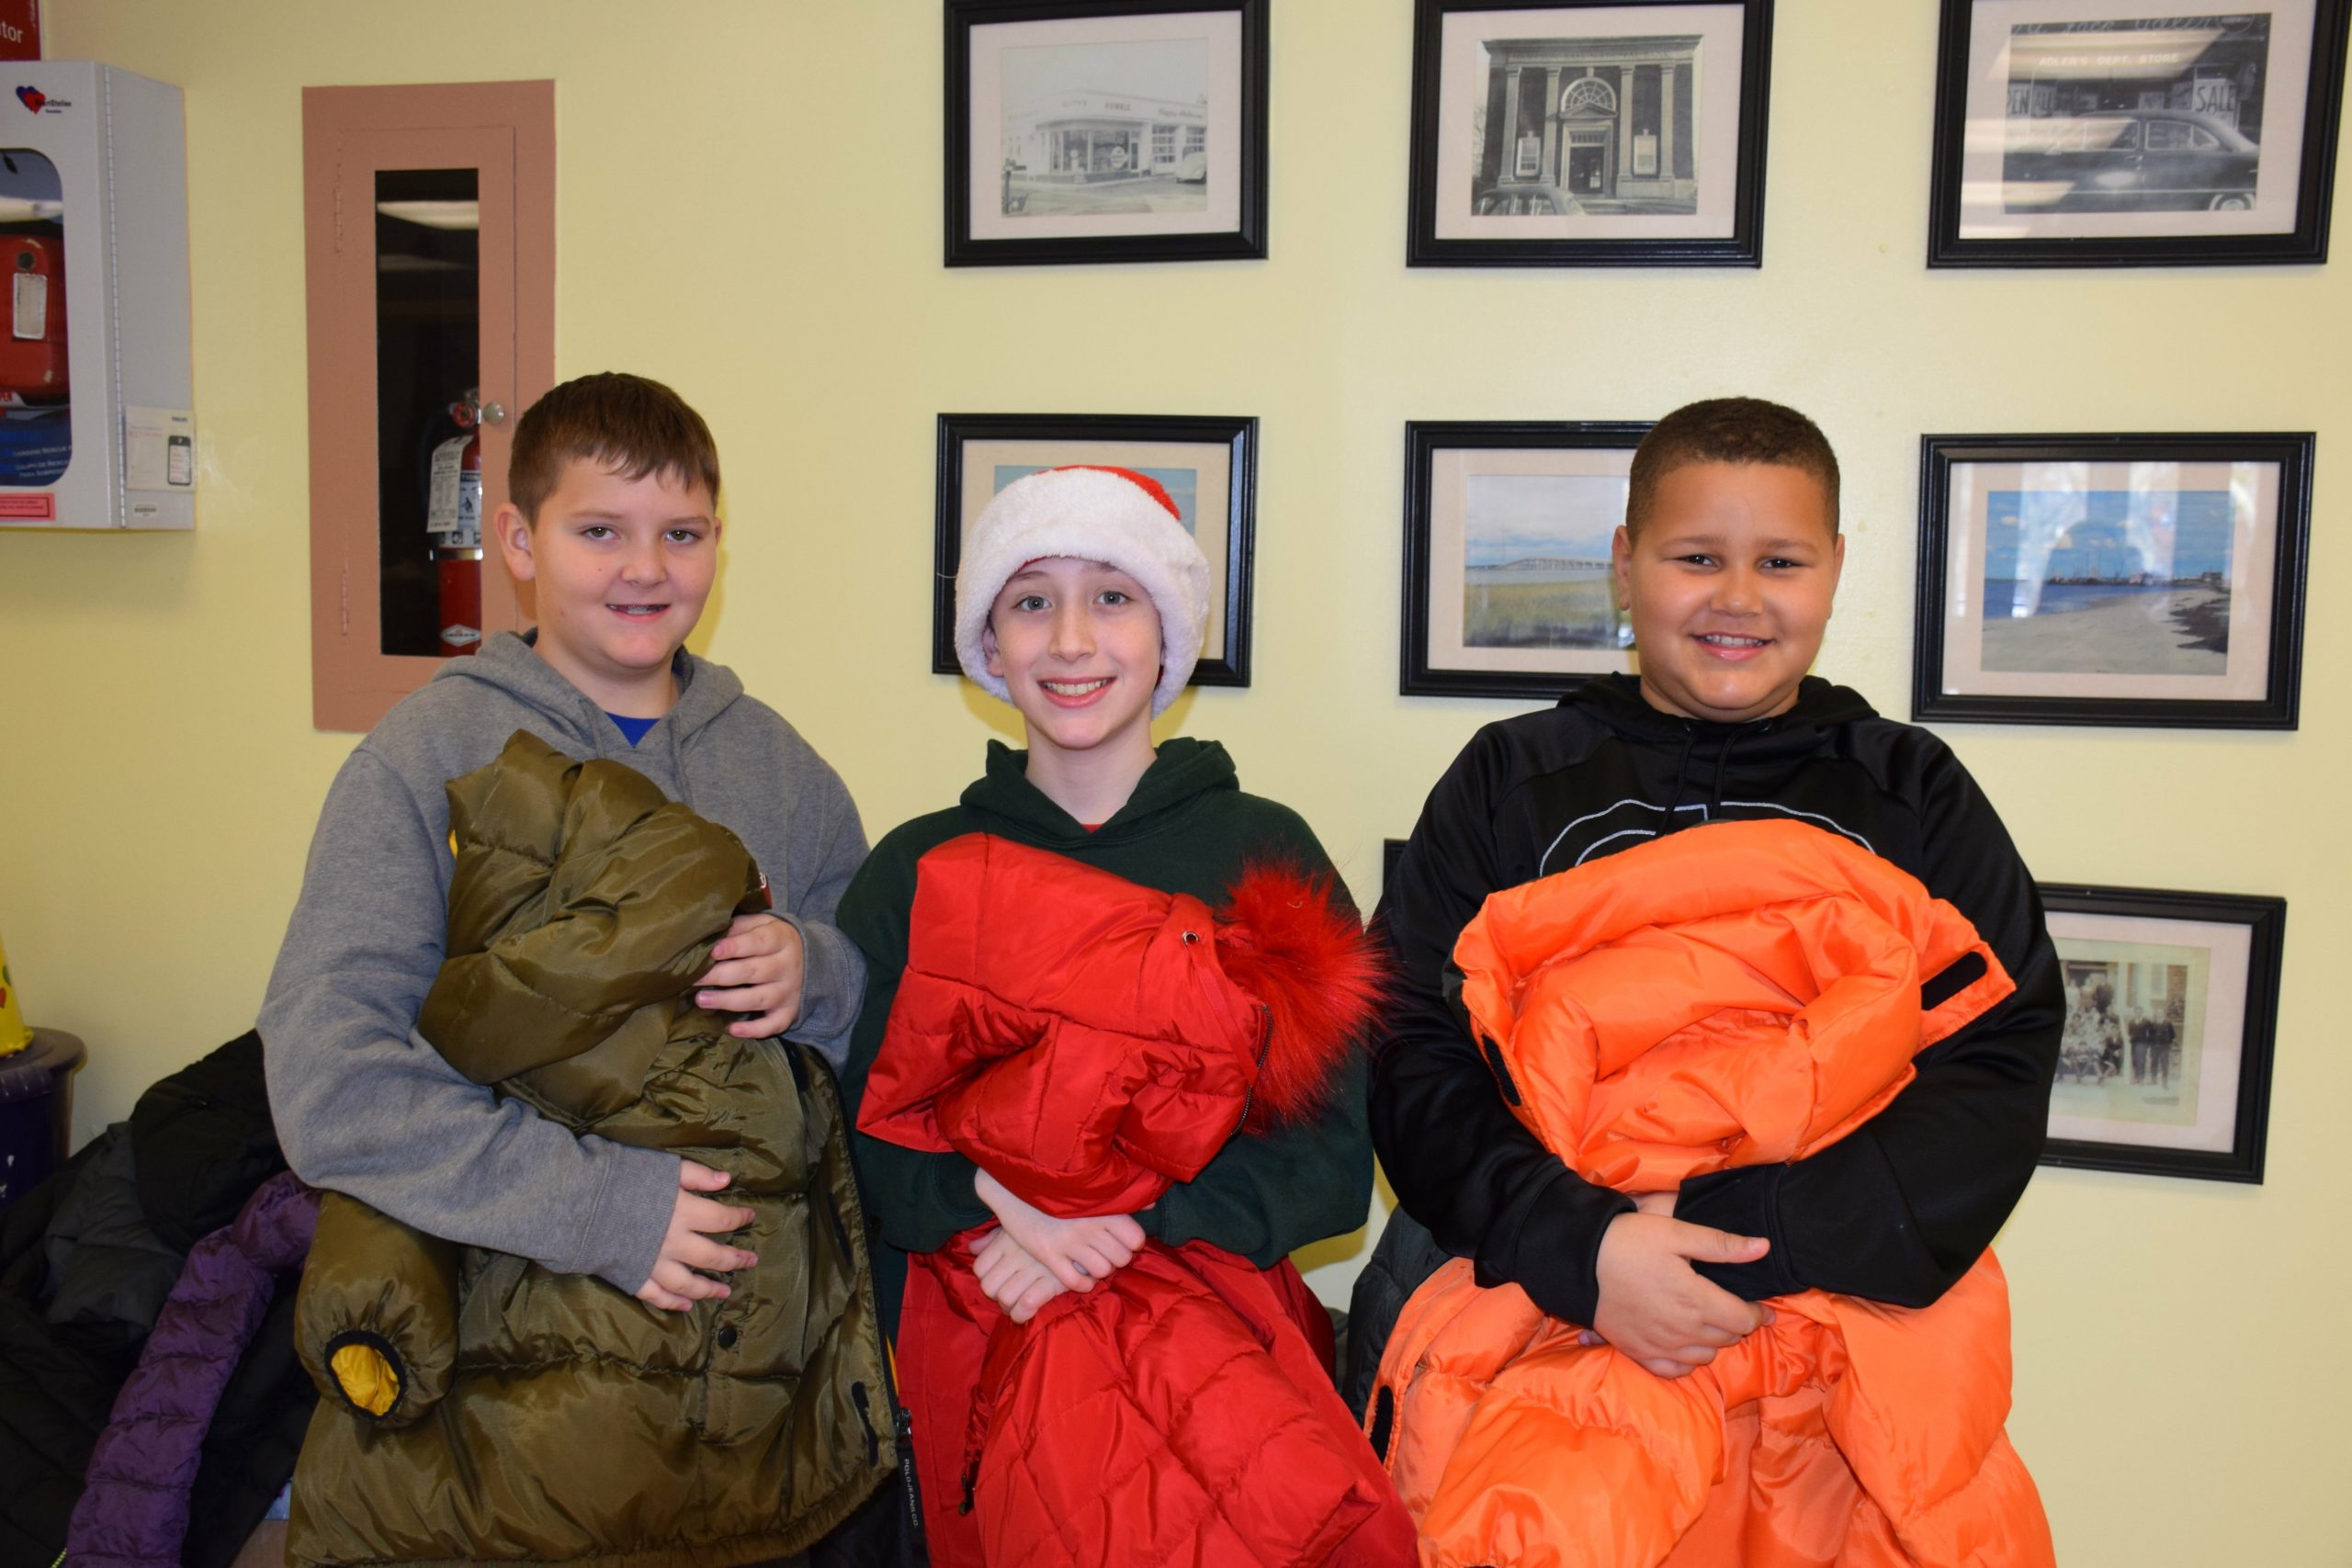 To give back to the community, members of the Hampton Bays Elementary School K-Kids community service club recently organized a coat drive. All coats will be donated to local families in need. From left,  K-Kids Liam Fitzgerald, Sean Donahue and John Hayes.